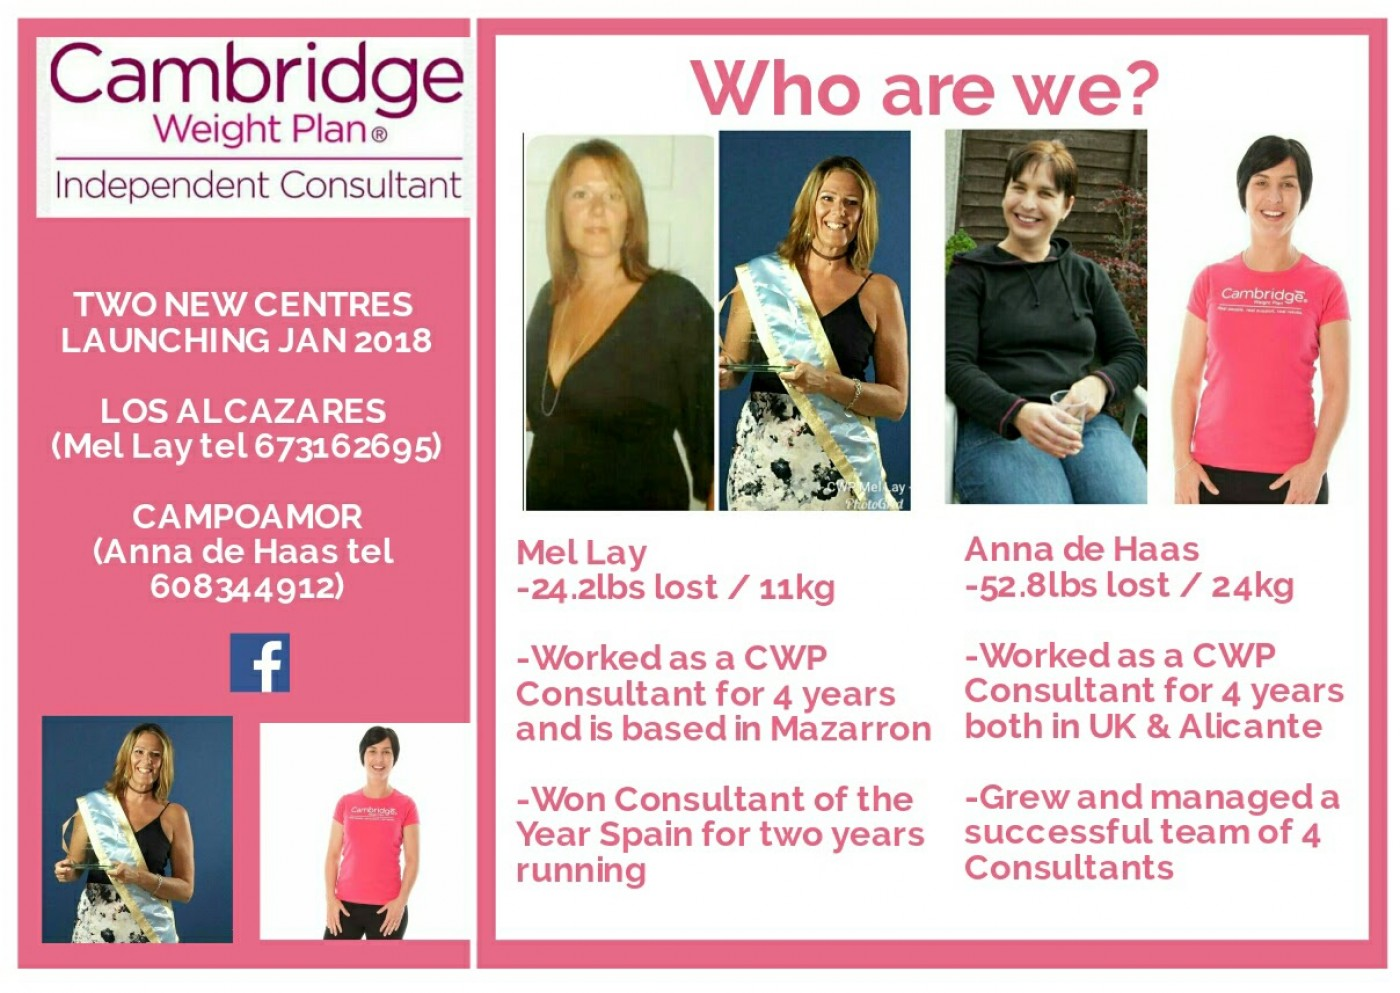 Cambridge Weight Plan Consultant in Mazarrón and Los Alcázares